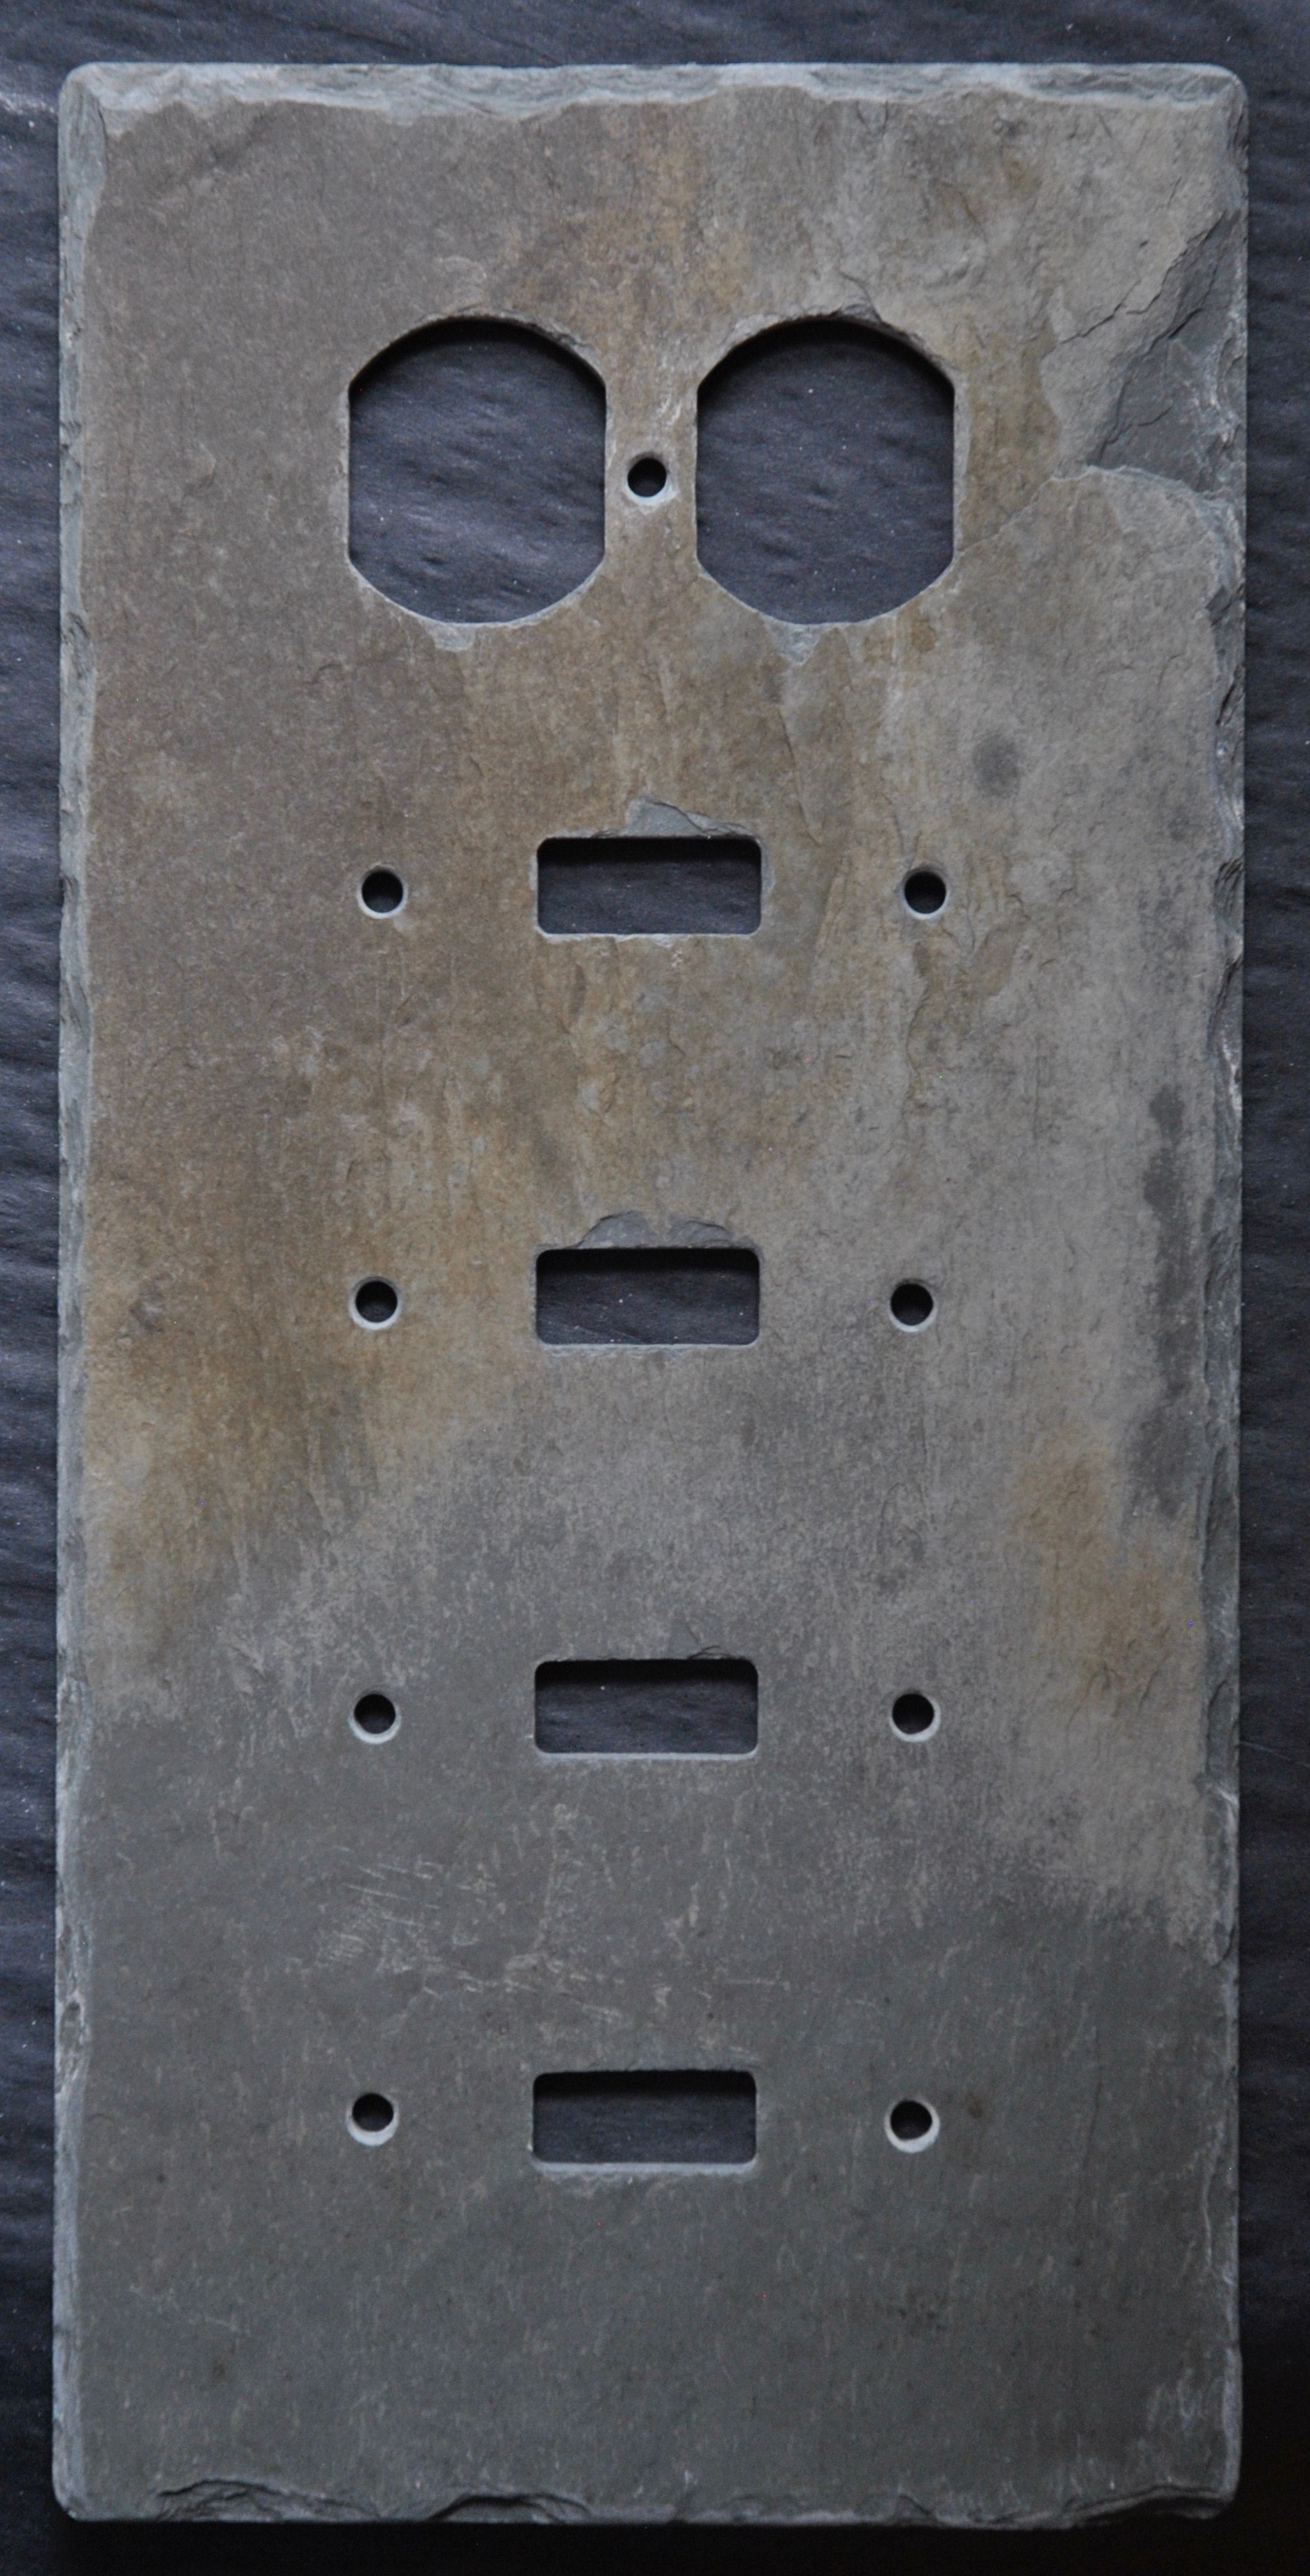 Unique Outlet Covers Www.slatewallplates Unique Slate Stone Wall Plates Light